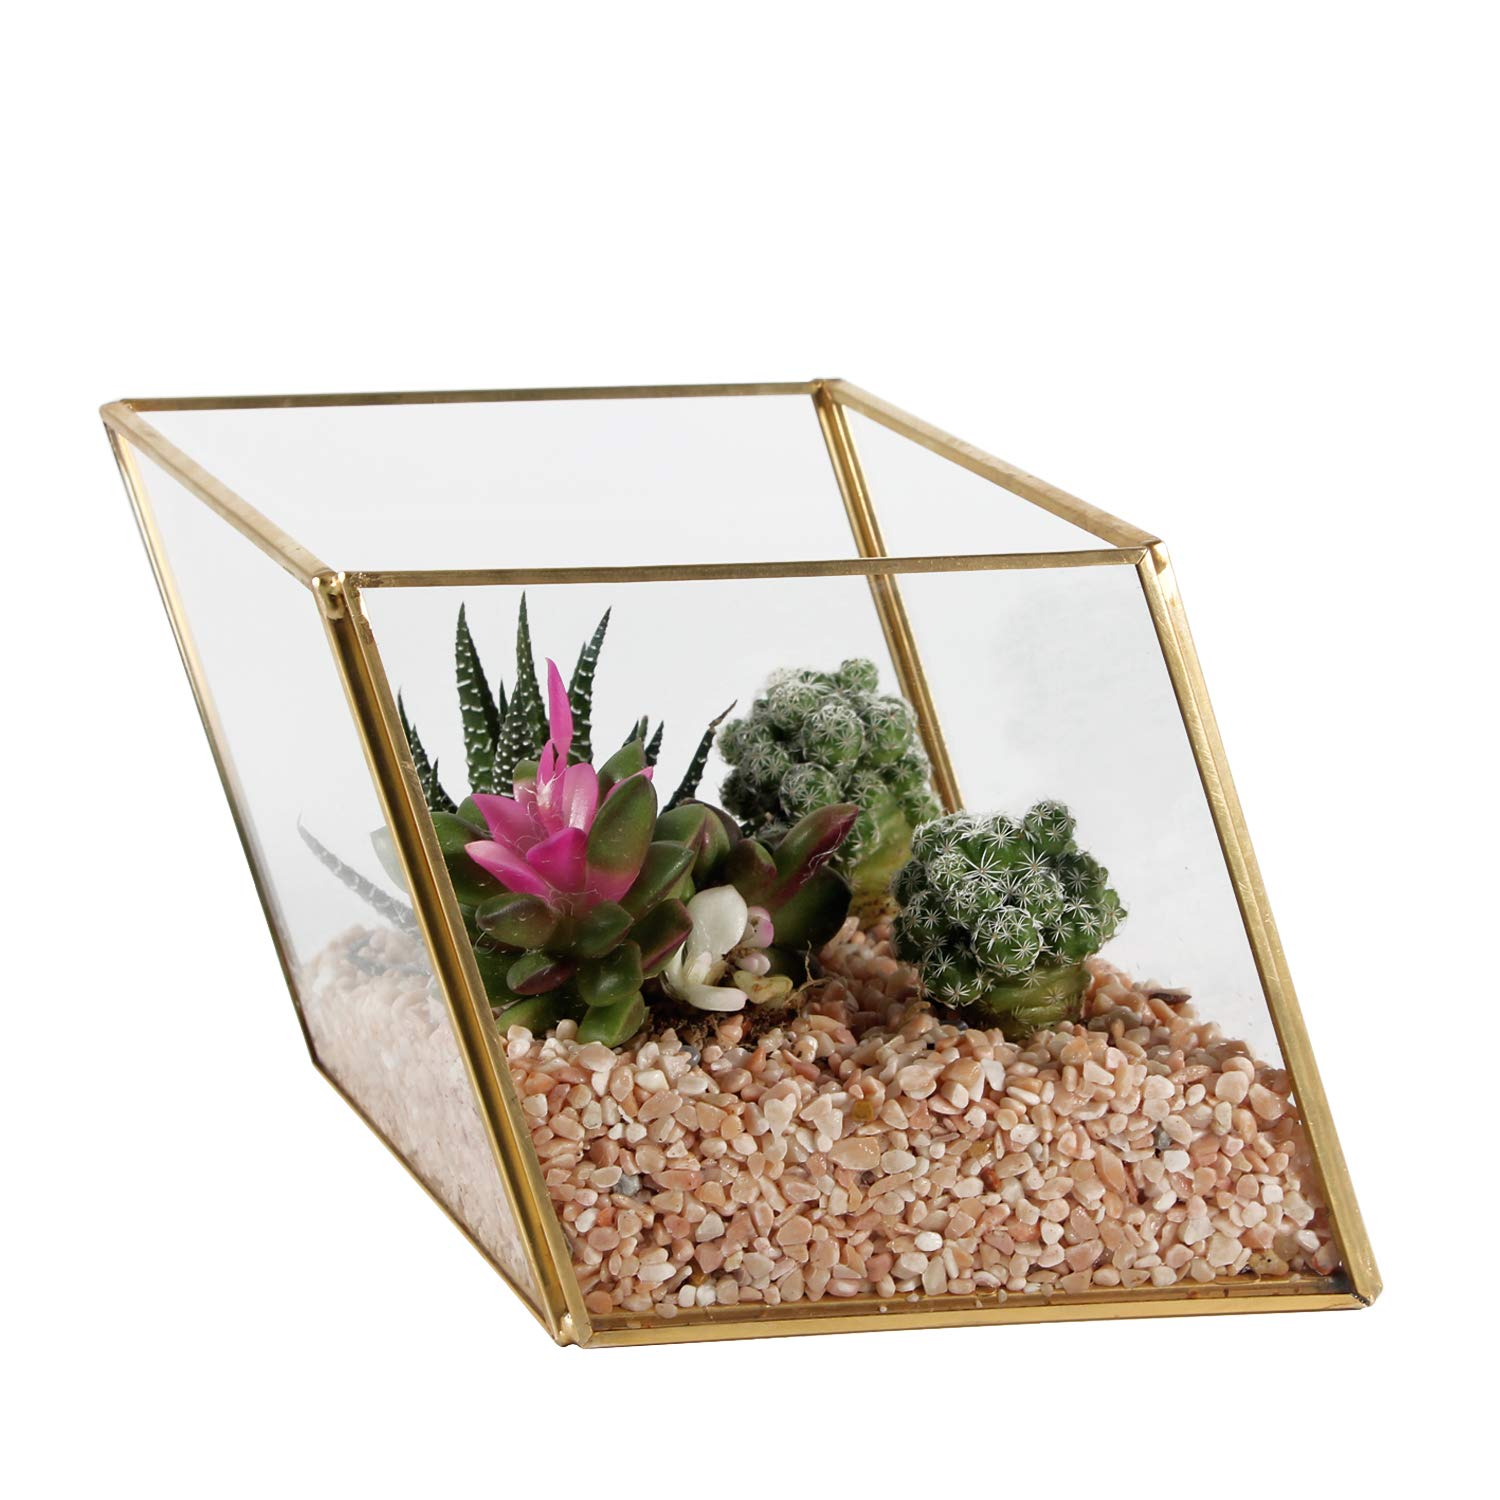 Kimdio Geometric Terrarium Clear Glass Tabletop Planter Air Plant Holder Display for Succulent Fern Moss Air Plants Holder Miniature Outdoor Fairy Garden DIY Gift